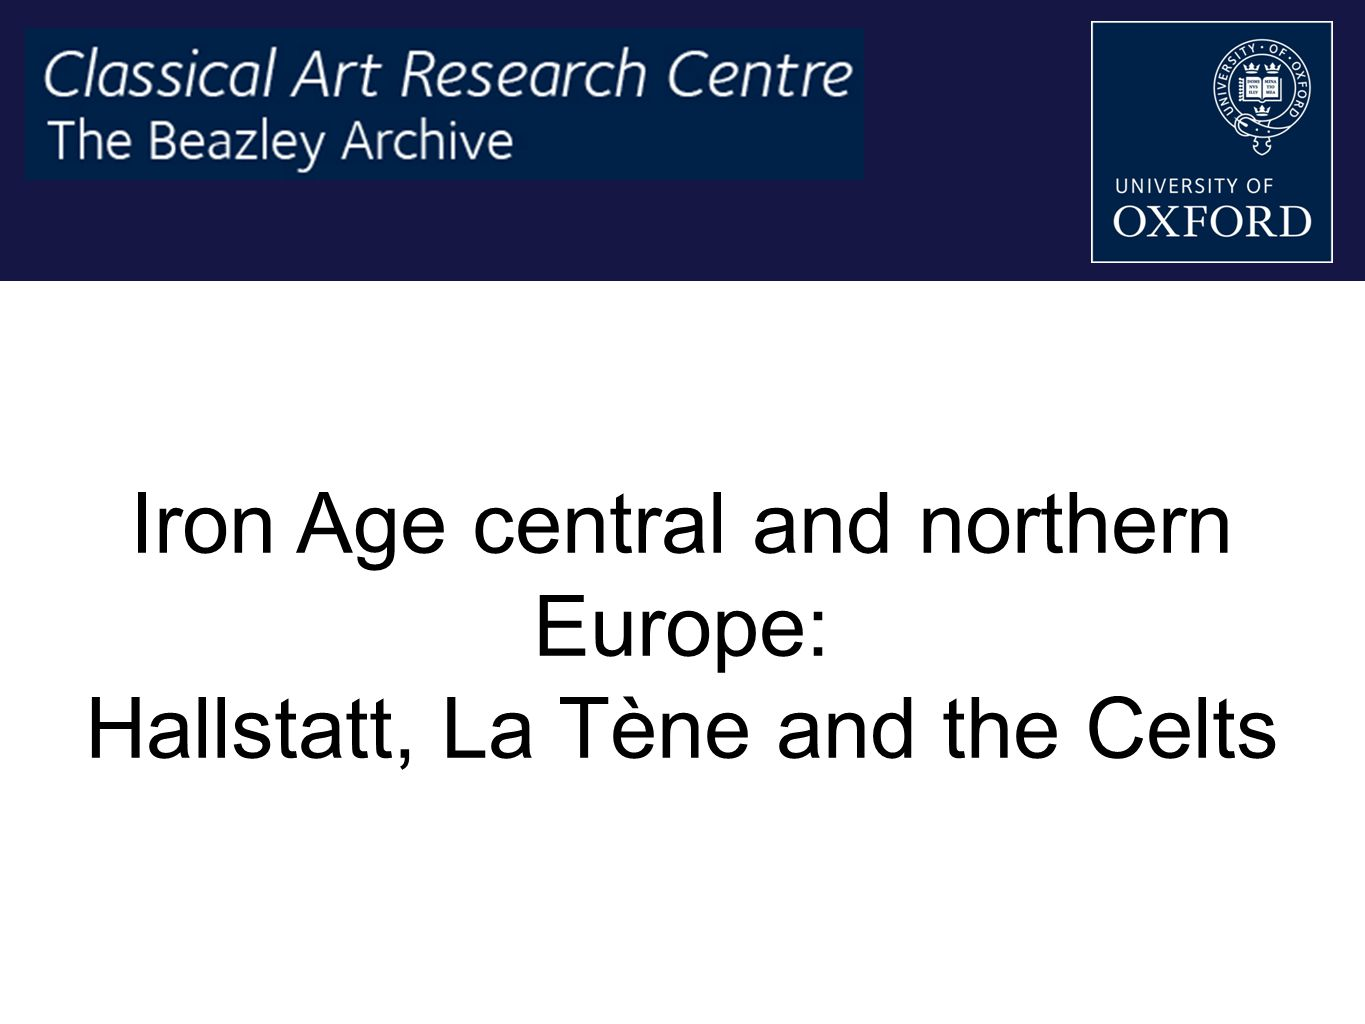 Iron Age central and northern Europe: Hallstatt, La Tène and the Celts